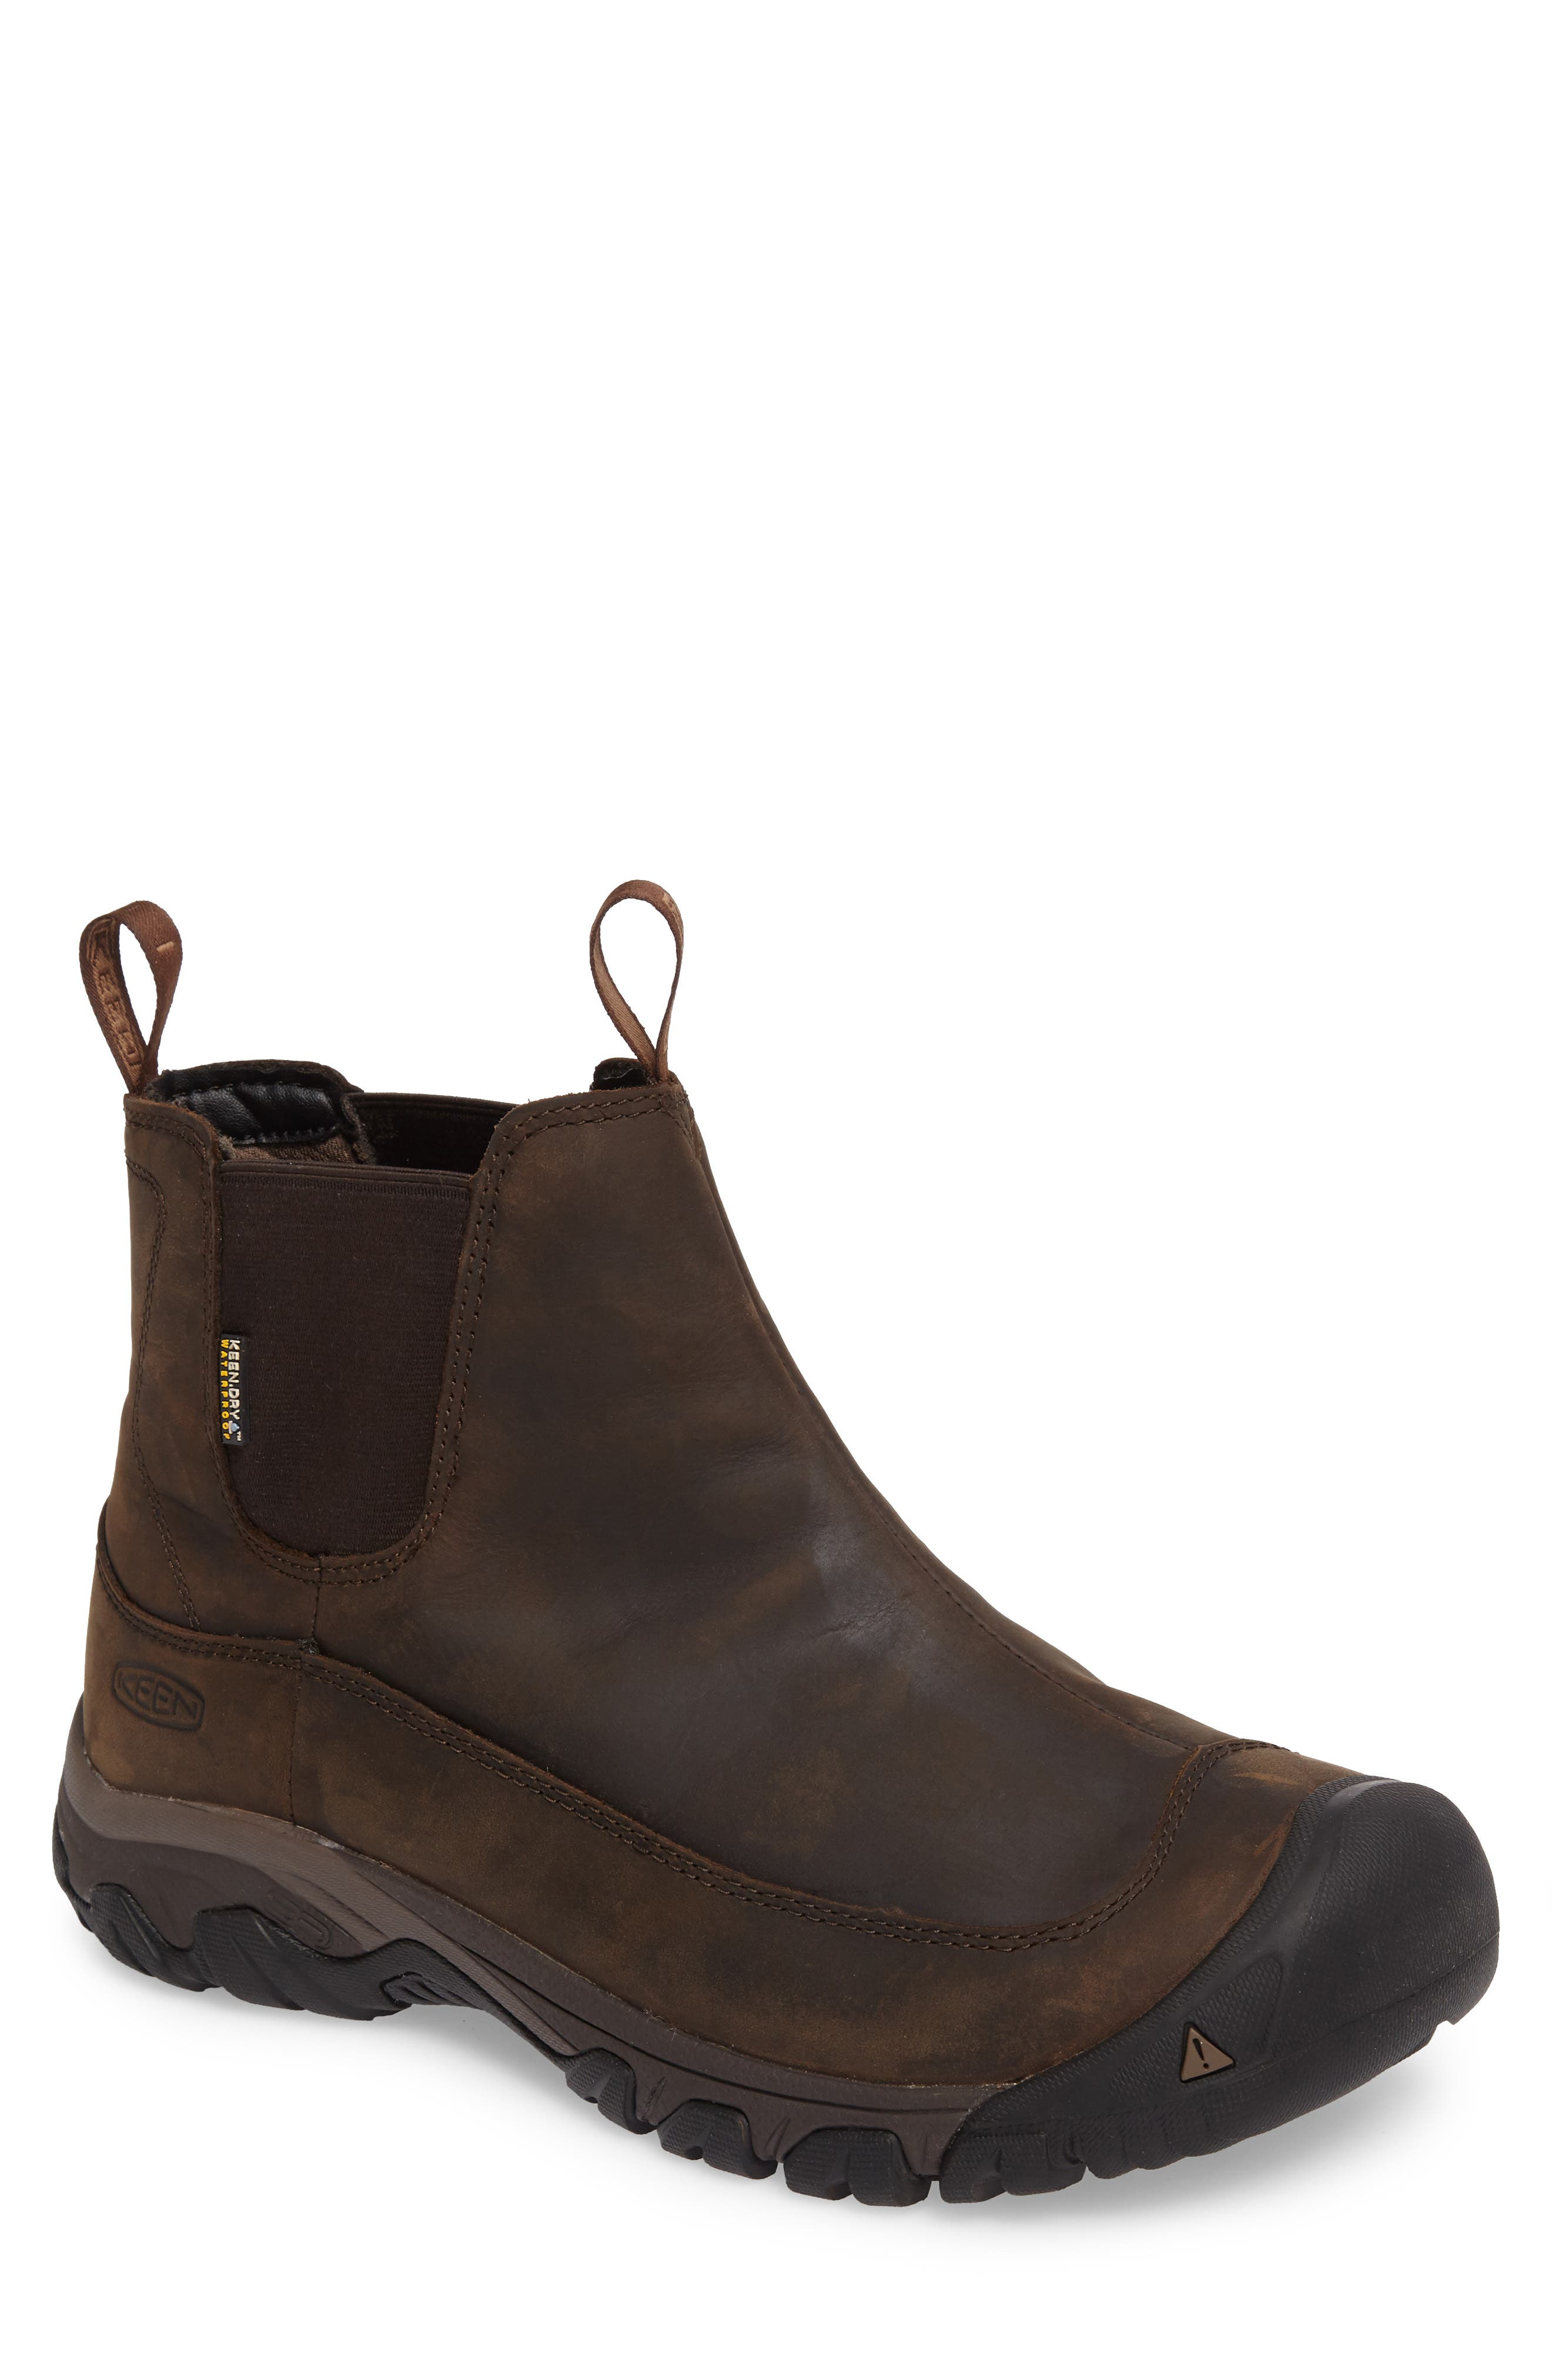 Main Image - Keen Anchorage II Waterproof Chelsea Boot (Men)